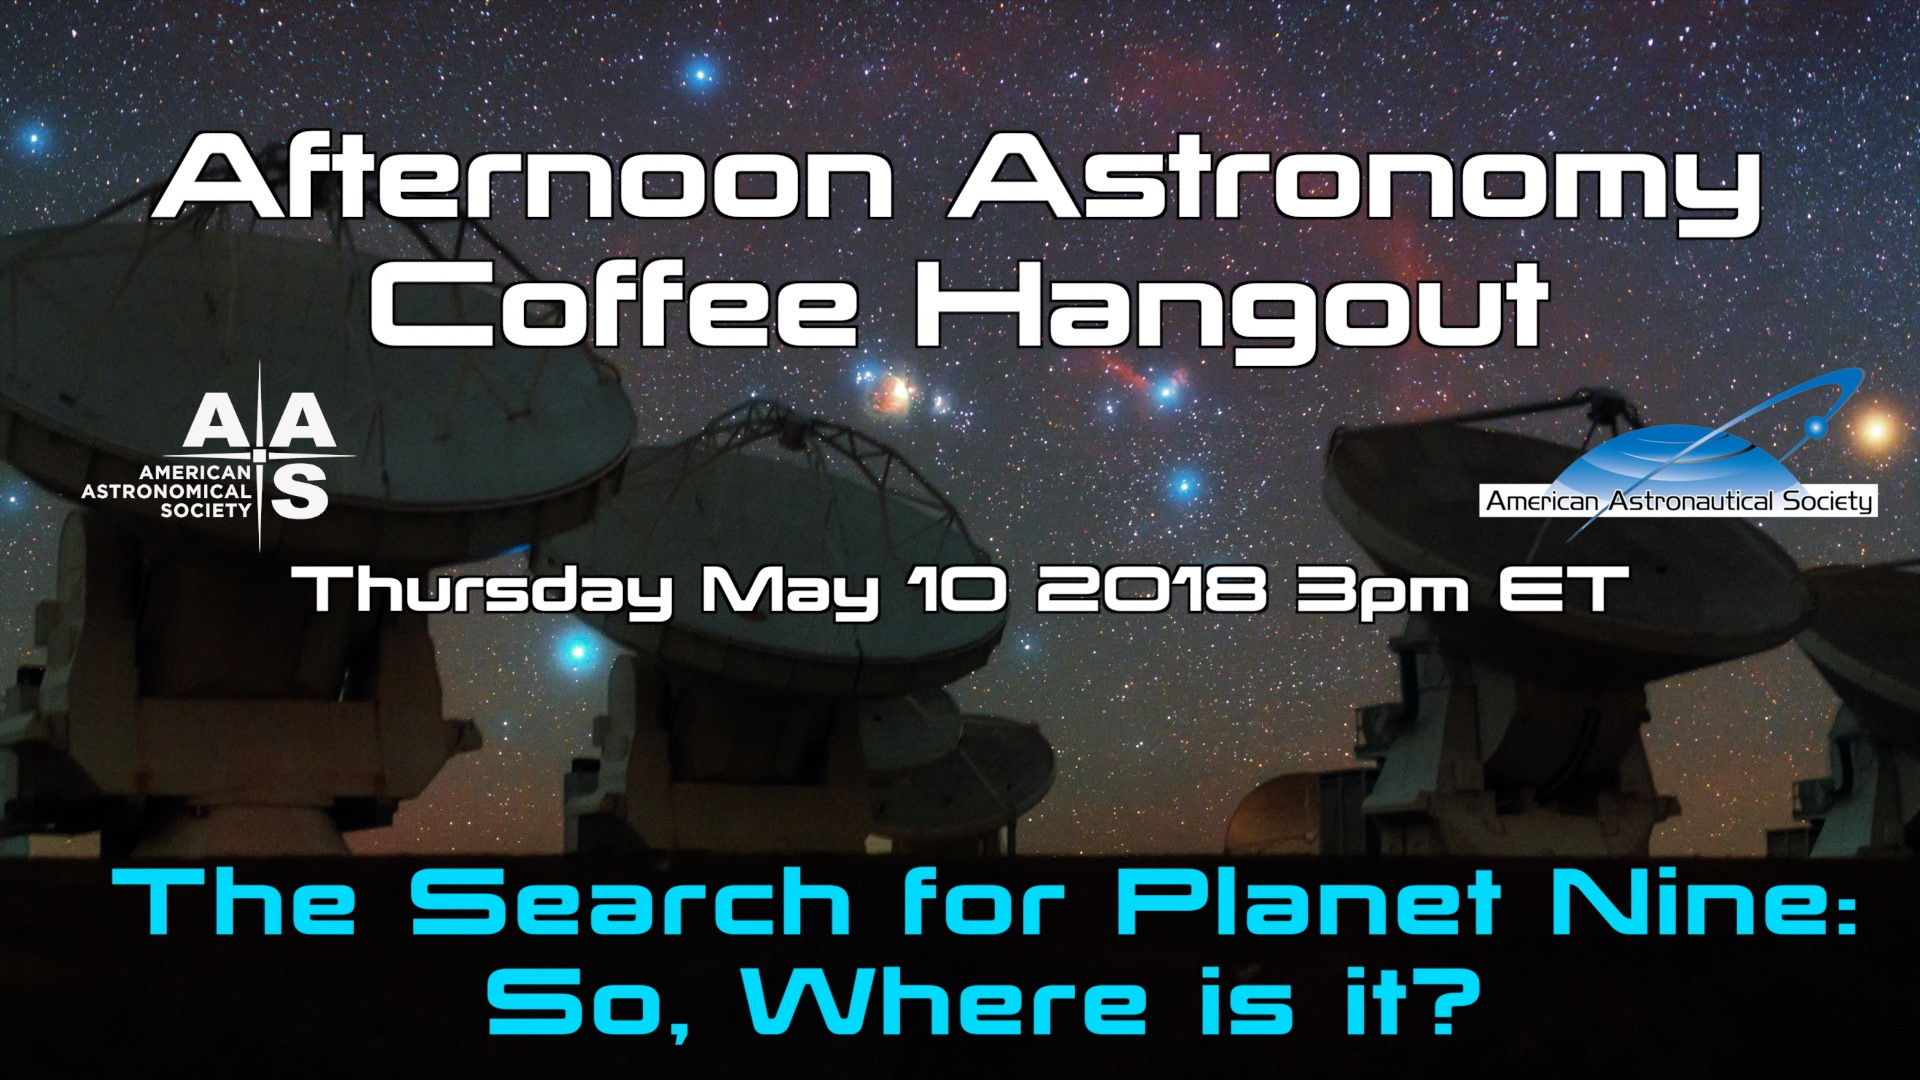 Afternoon Astronomy Coffee Hangout